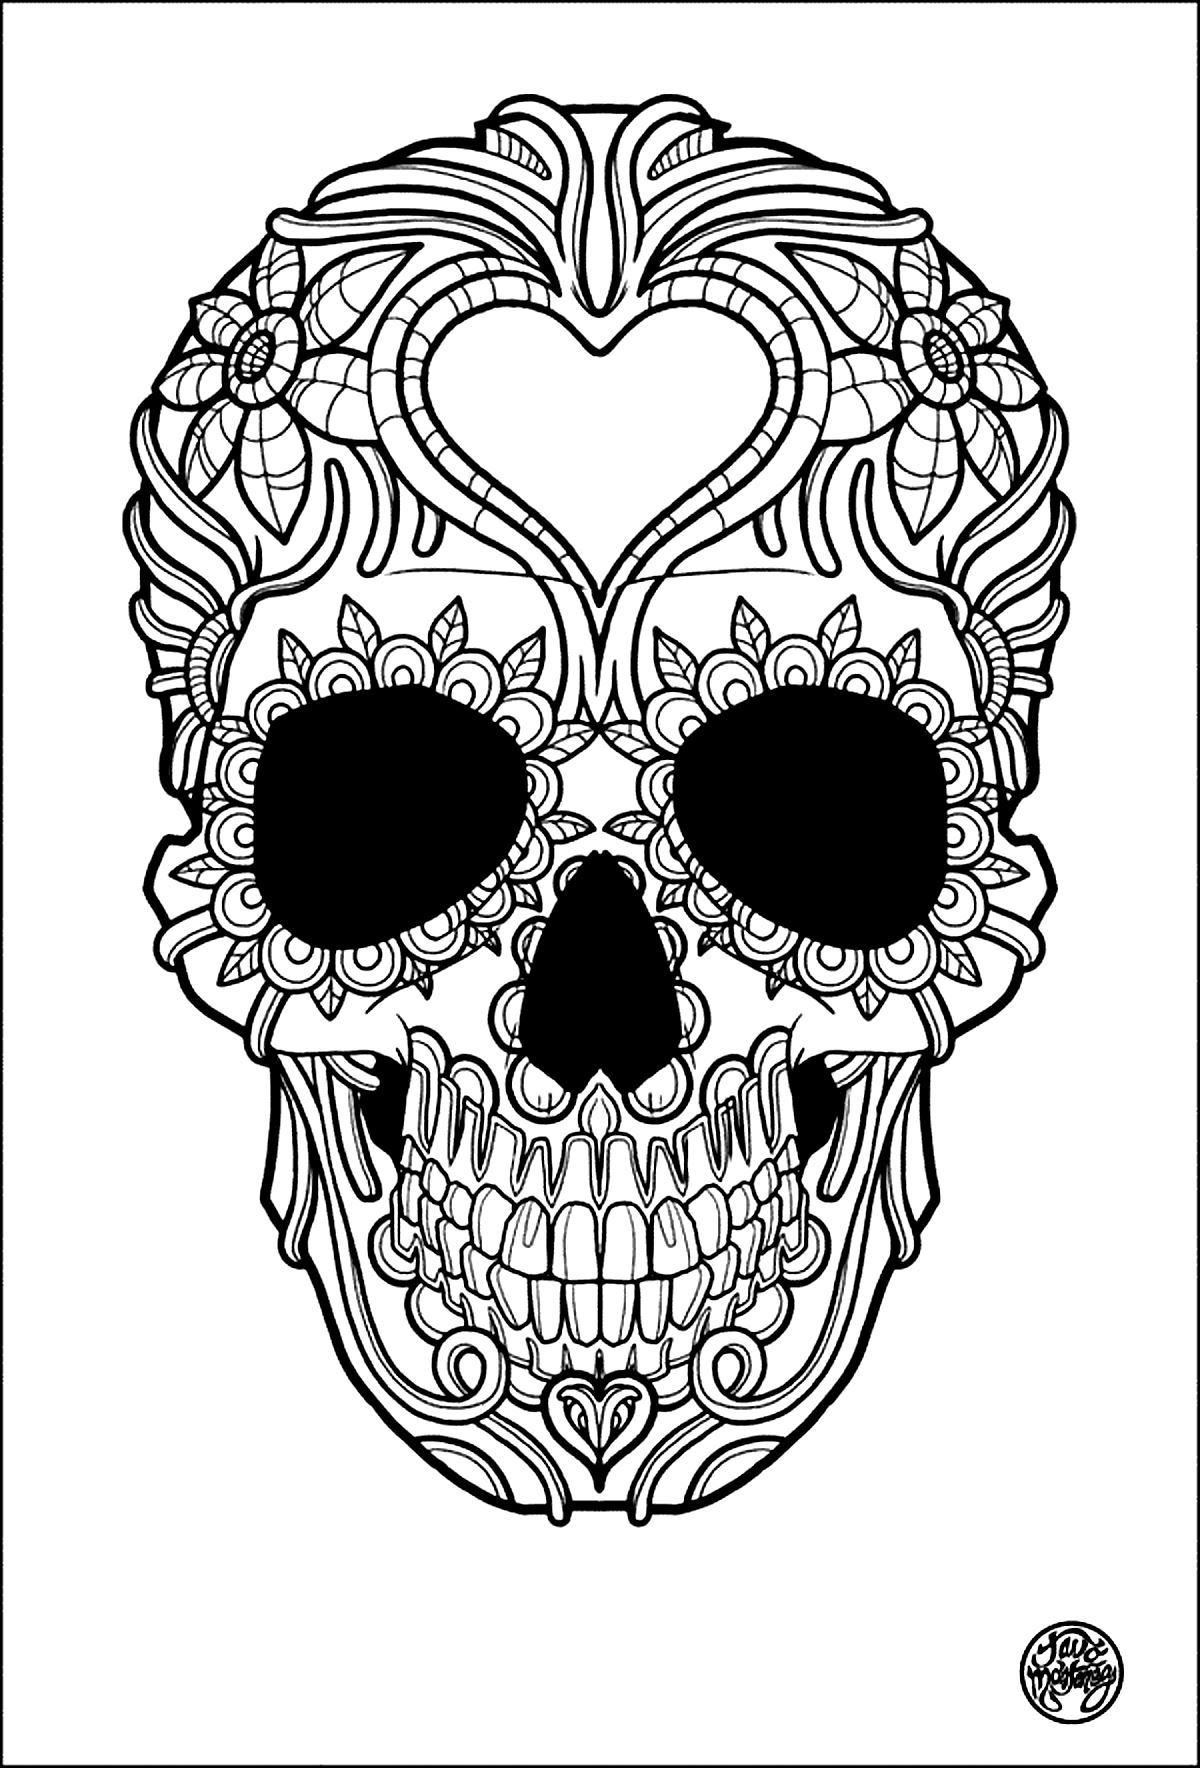 Tattoo coloring #9, Download drawings